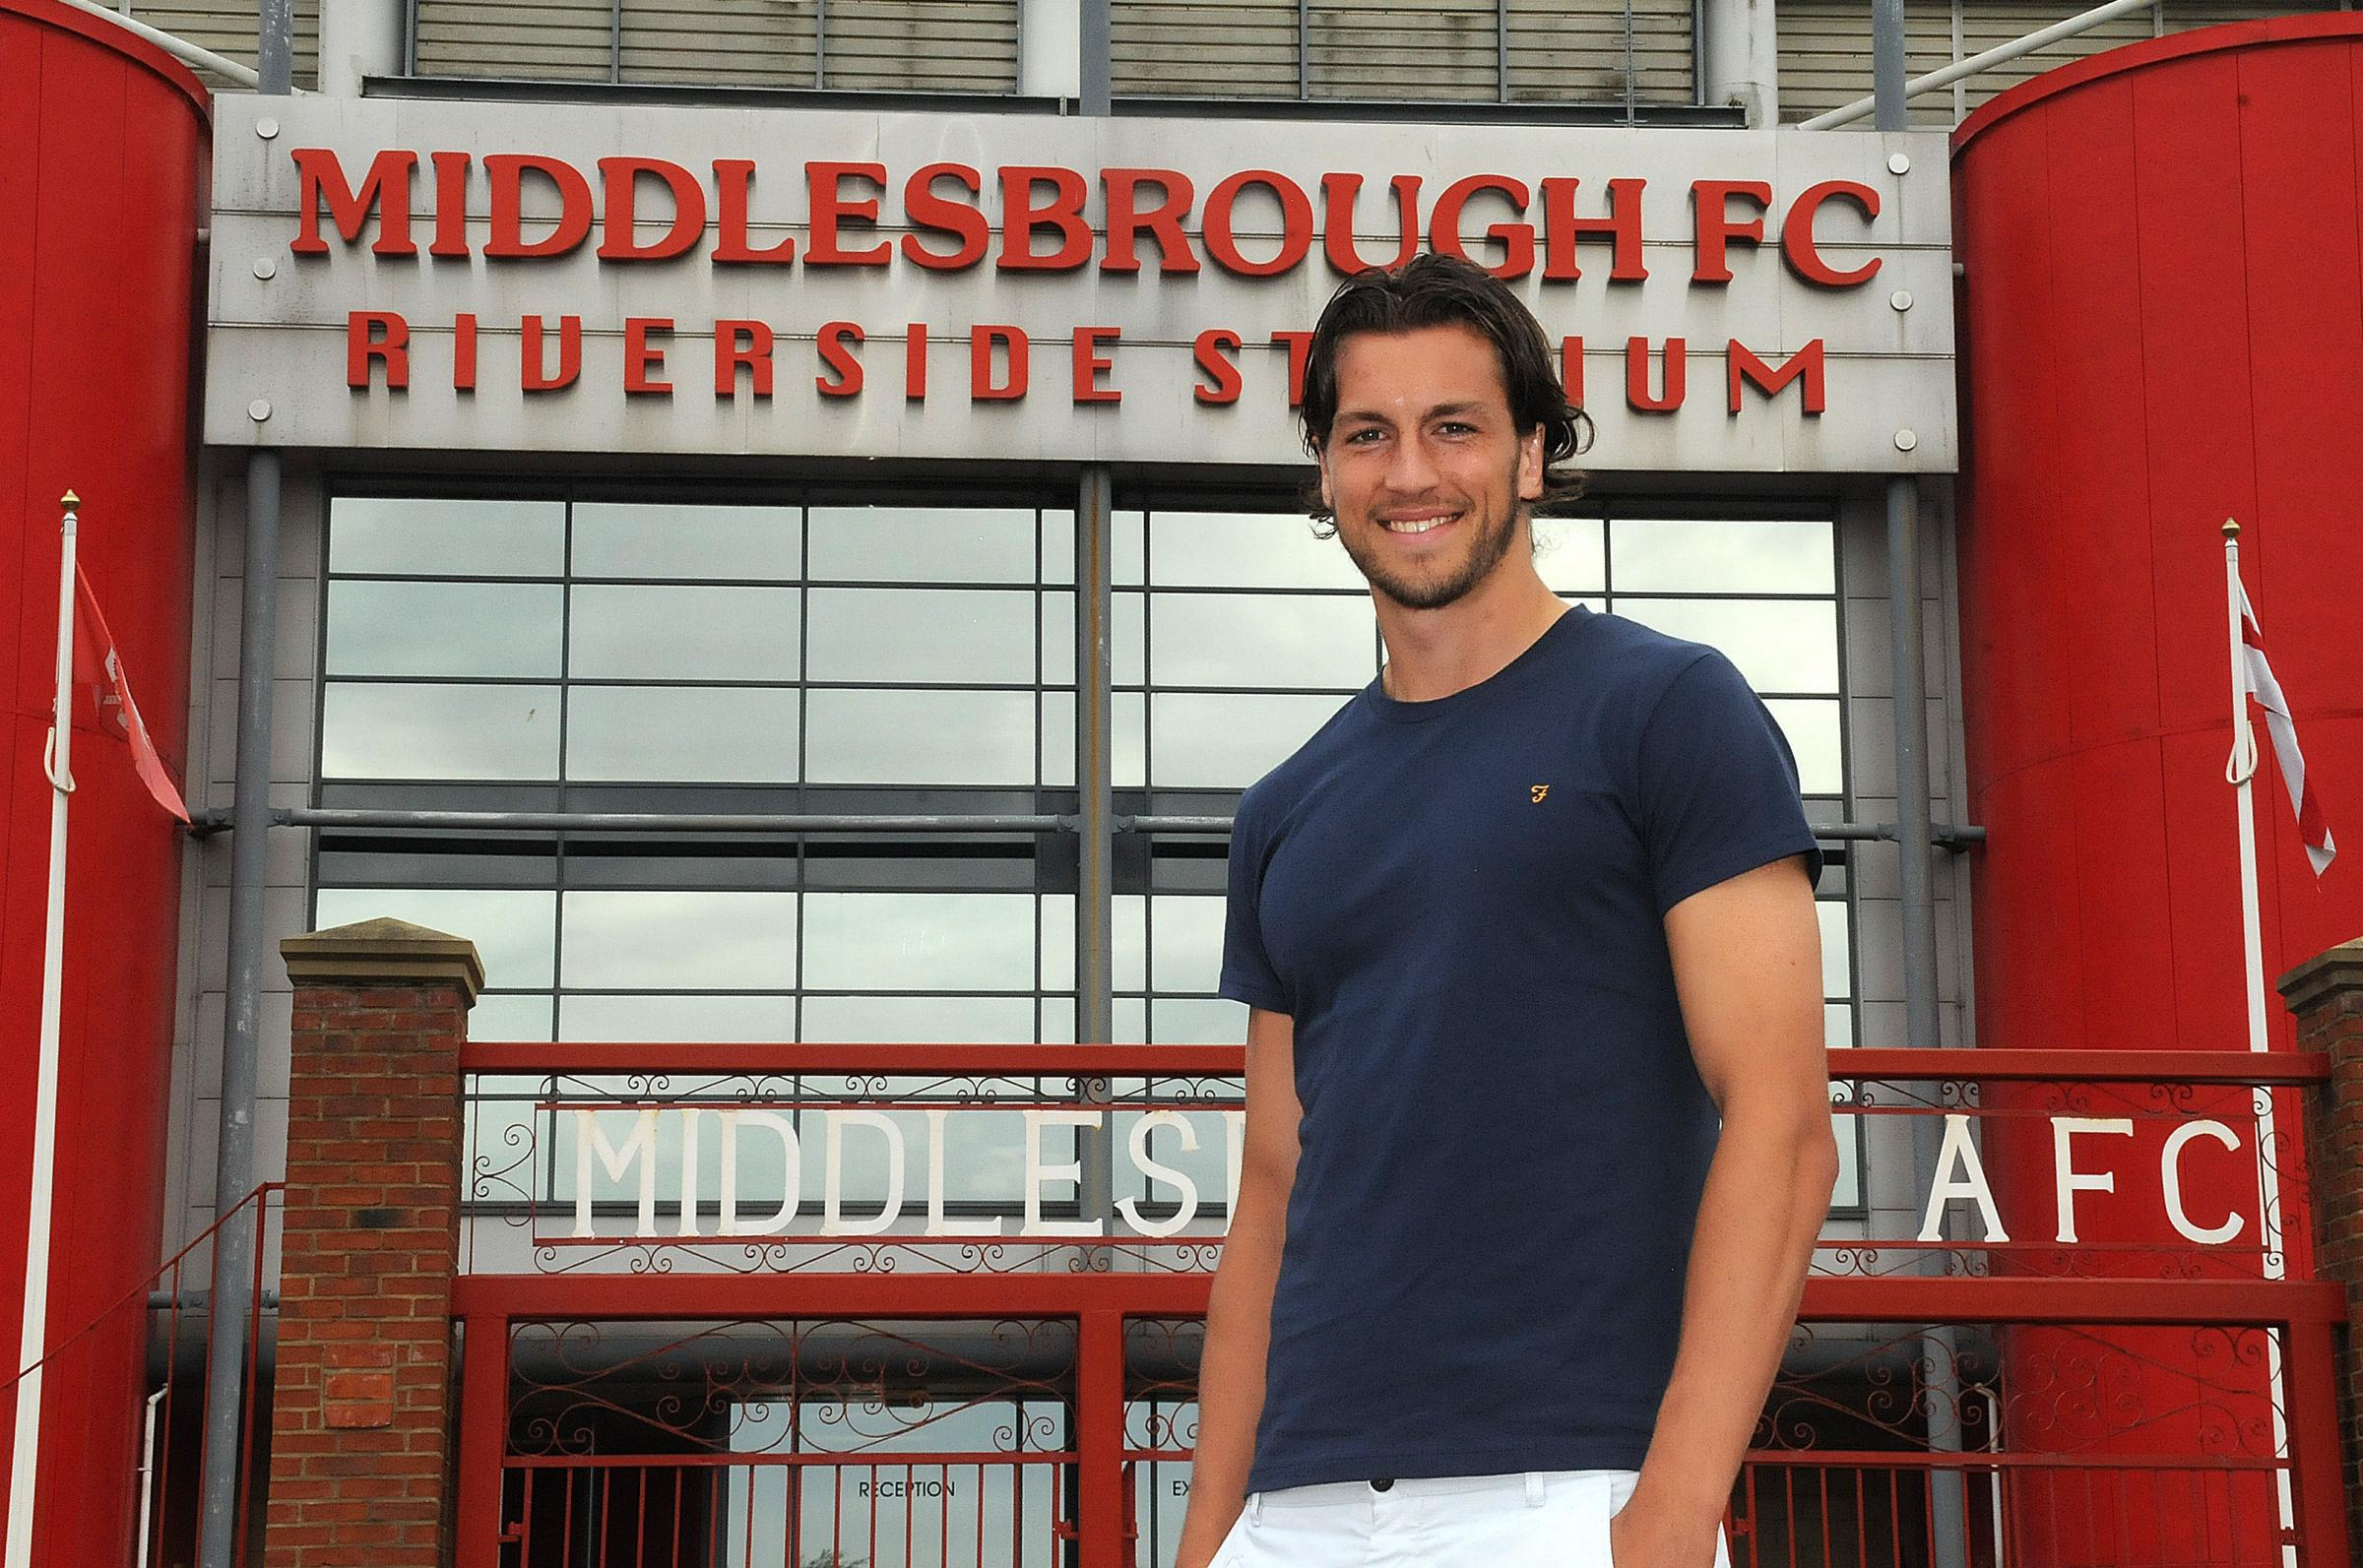 DEFENDER'S DEGREE: Graduate and ex-Boro player Christian Burgess